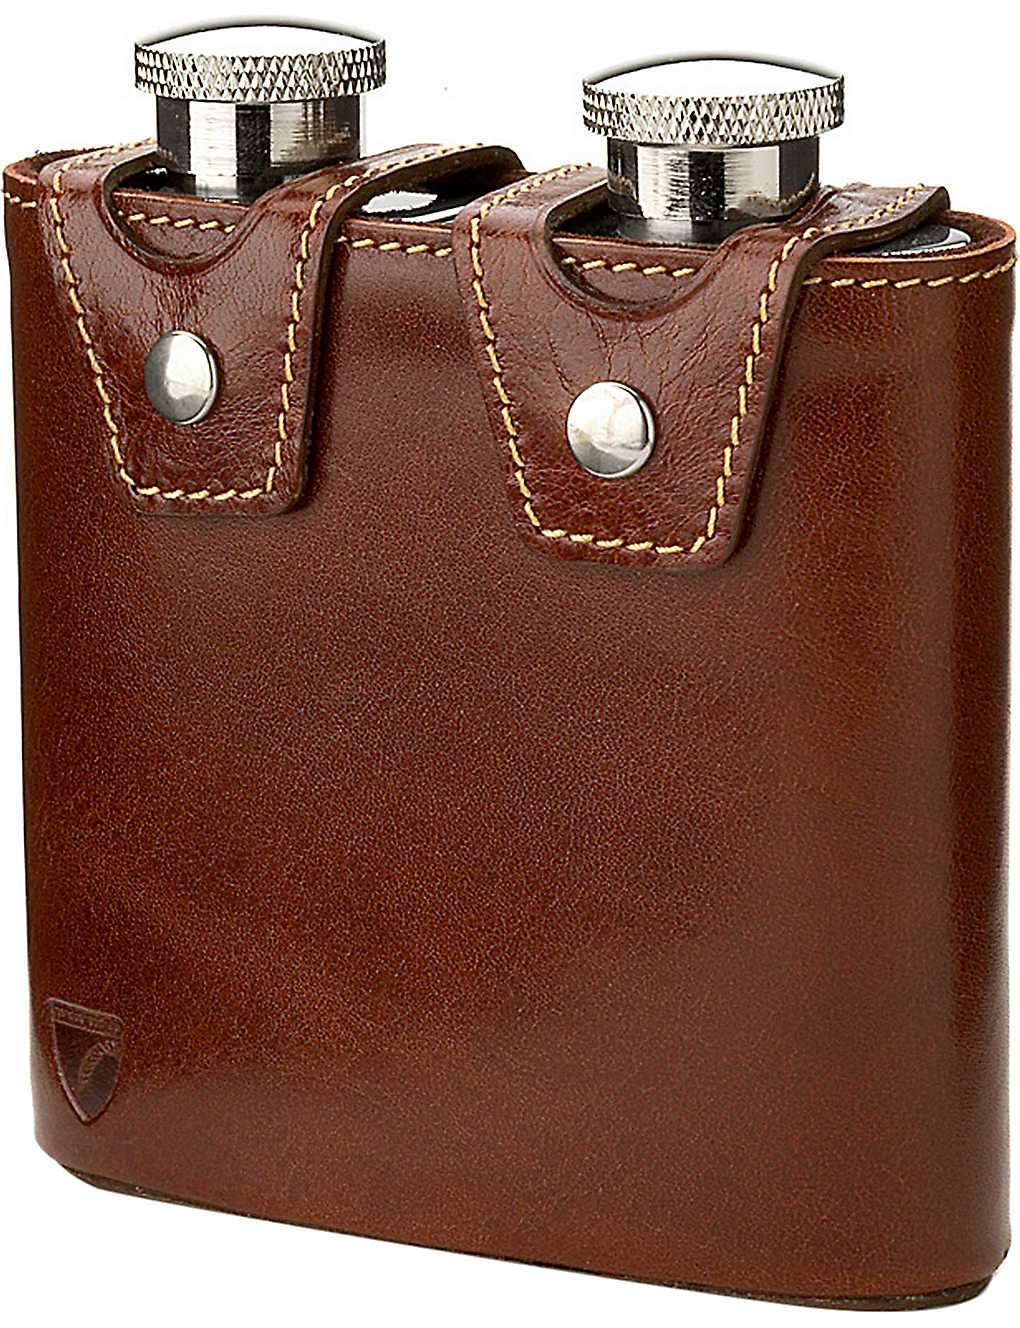 ASPINAL OF LONDON: Double leather hip flask